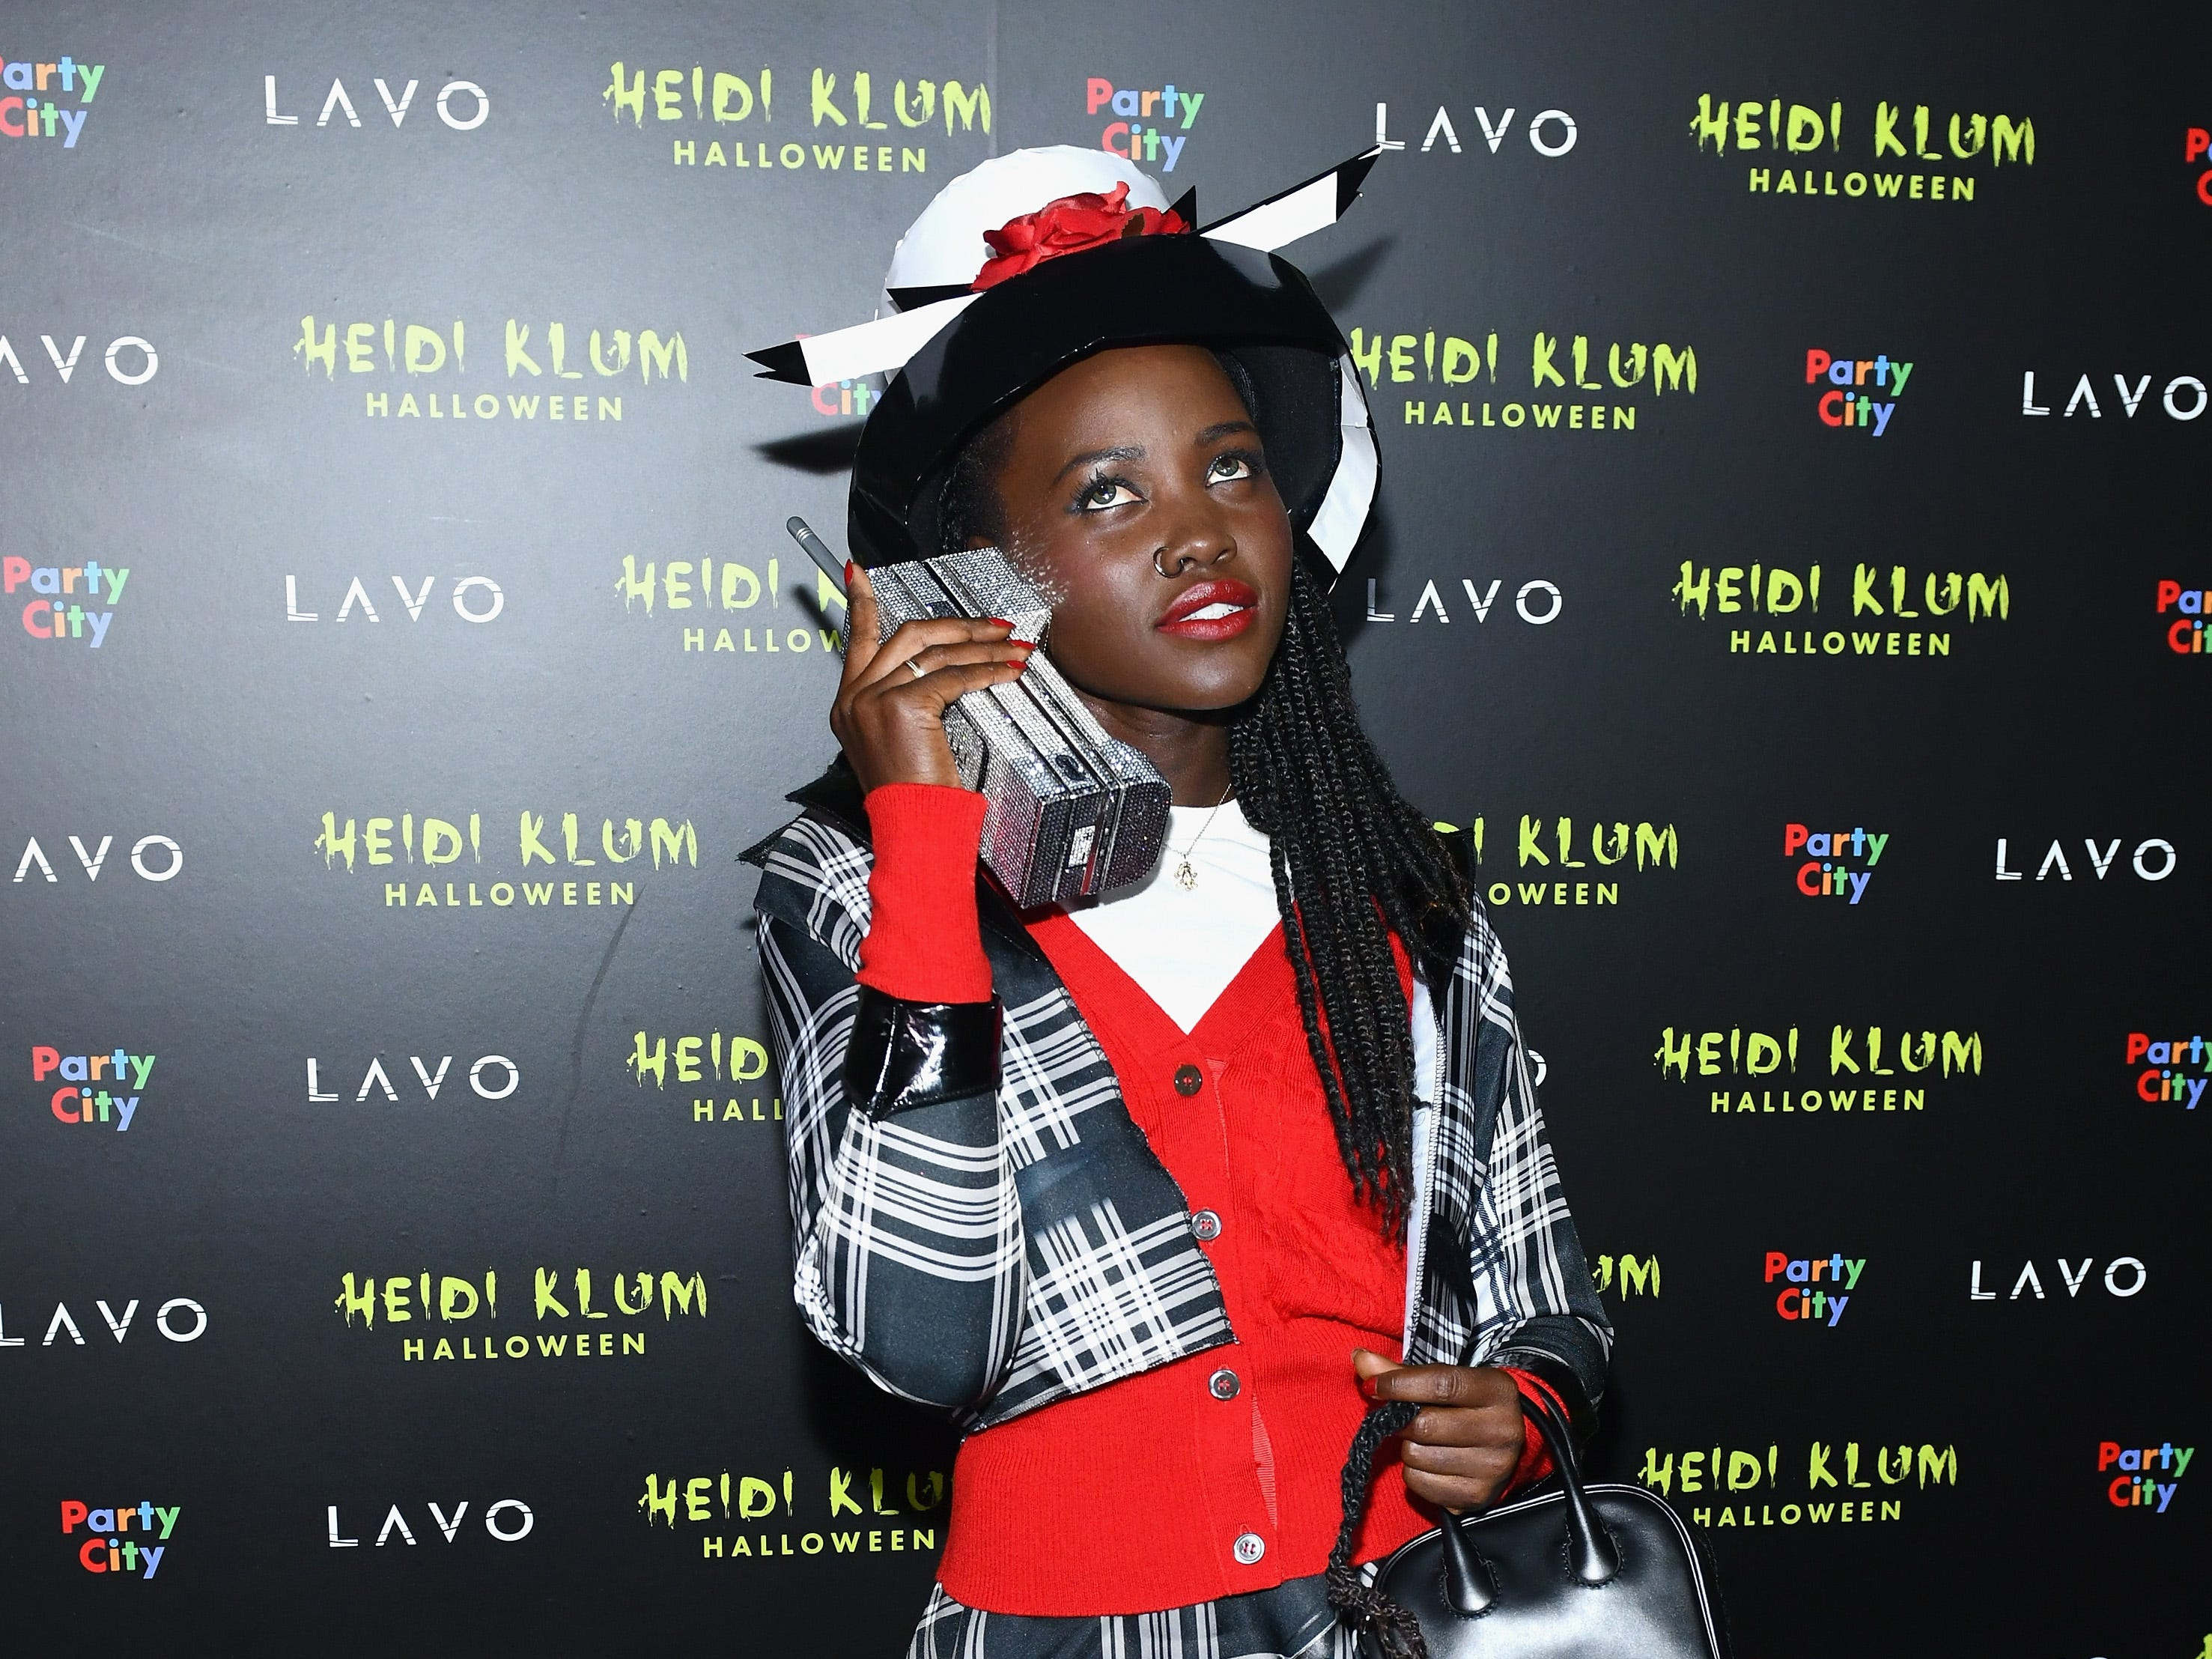 """October 31: Lupita Nyong'o channels """"Clueless"""" at Heidi Klum's 19th Annual Halloween Party in New York City."""